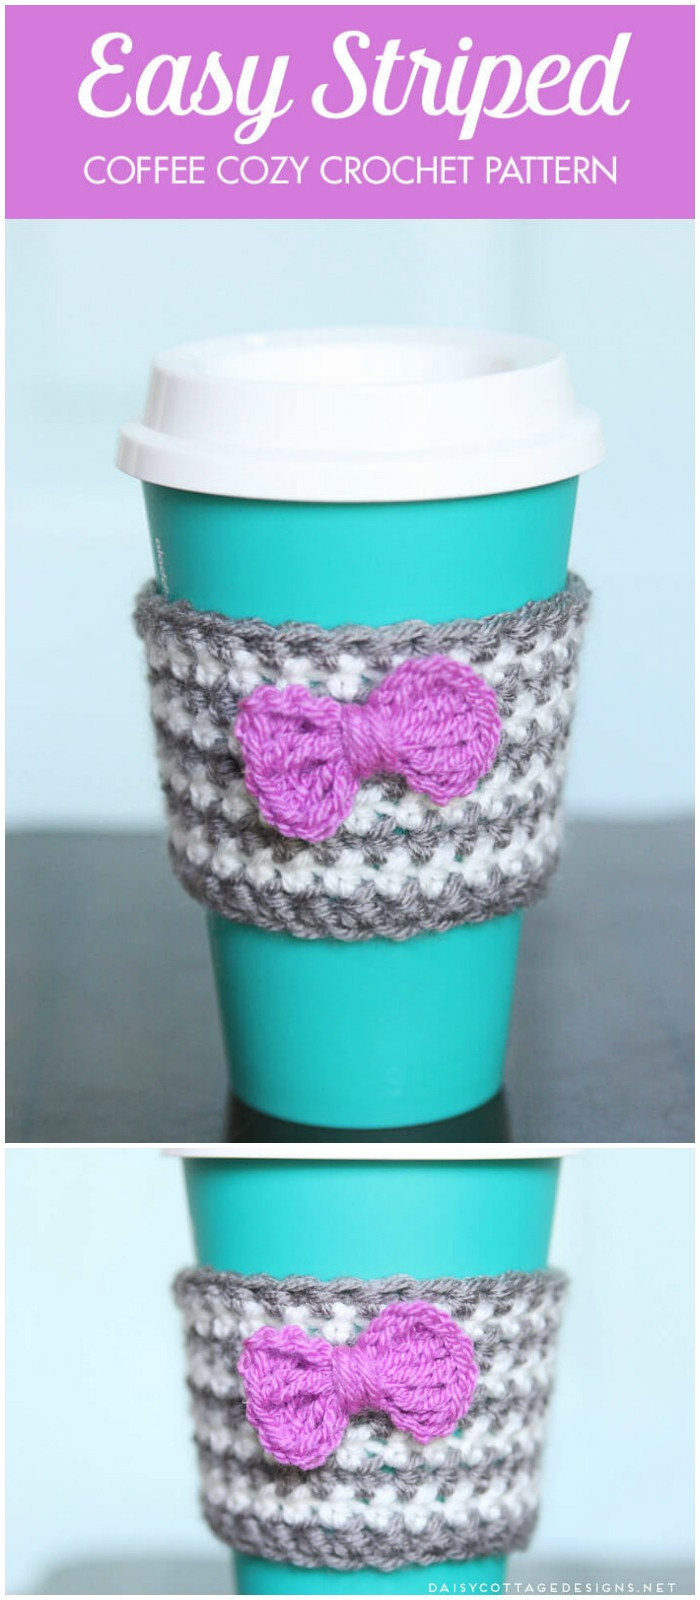 Crochet Coffee Cup Cozy Fresh 8 Crochet Cozy Patterns Free Crochet Patterns • Diy Home Of Unique 44 Pics Crochet Coffee Cup Cozy